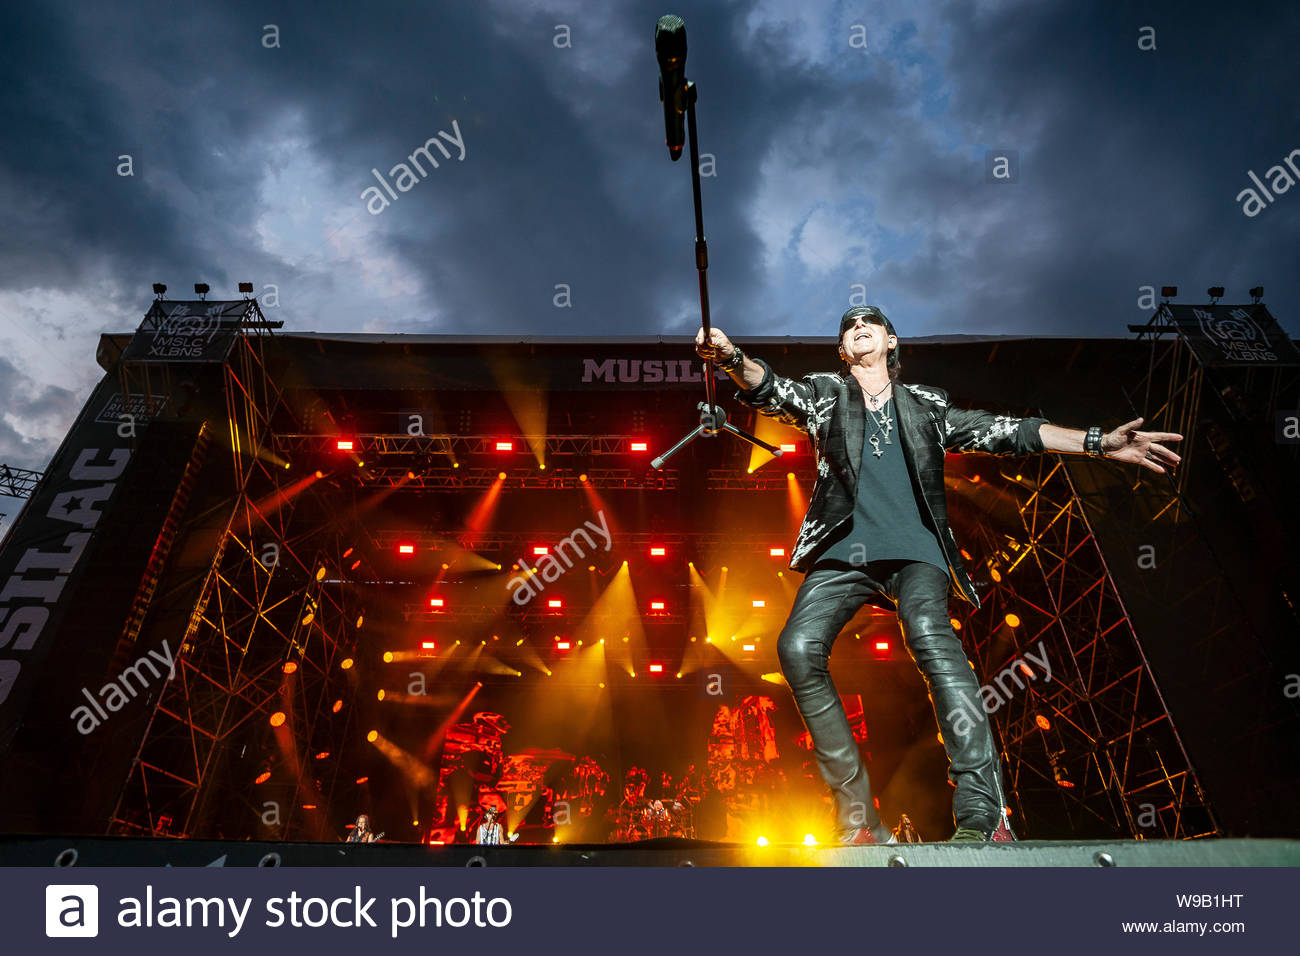 Scorpions : Klaus Meine (lead vocals) performing live at Musilac summer festival in Aix-les-Bains (France) in 2019 Stock Photo